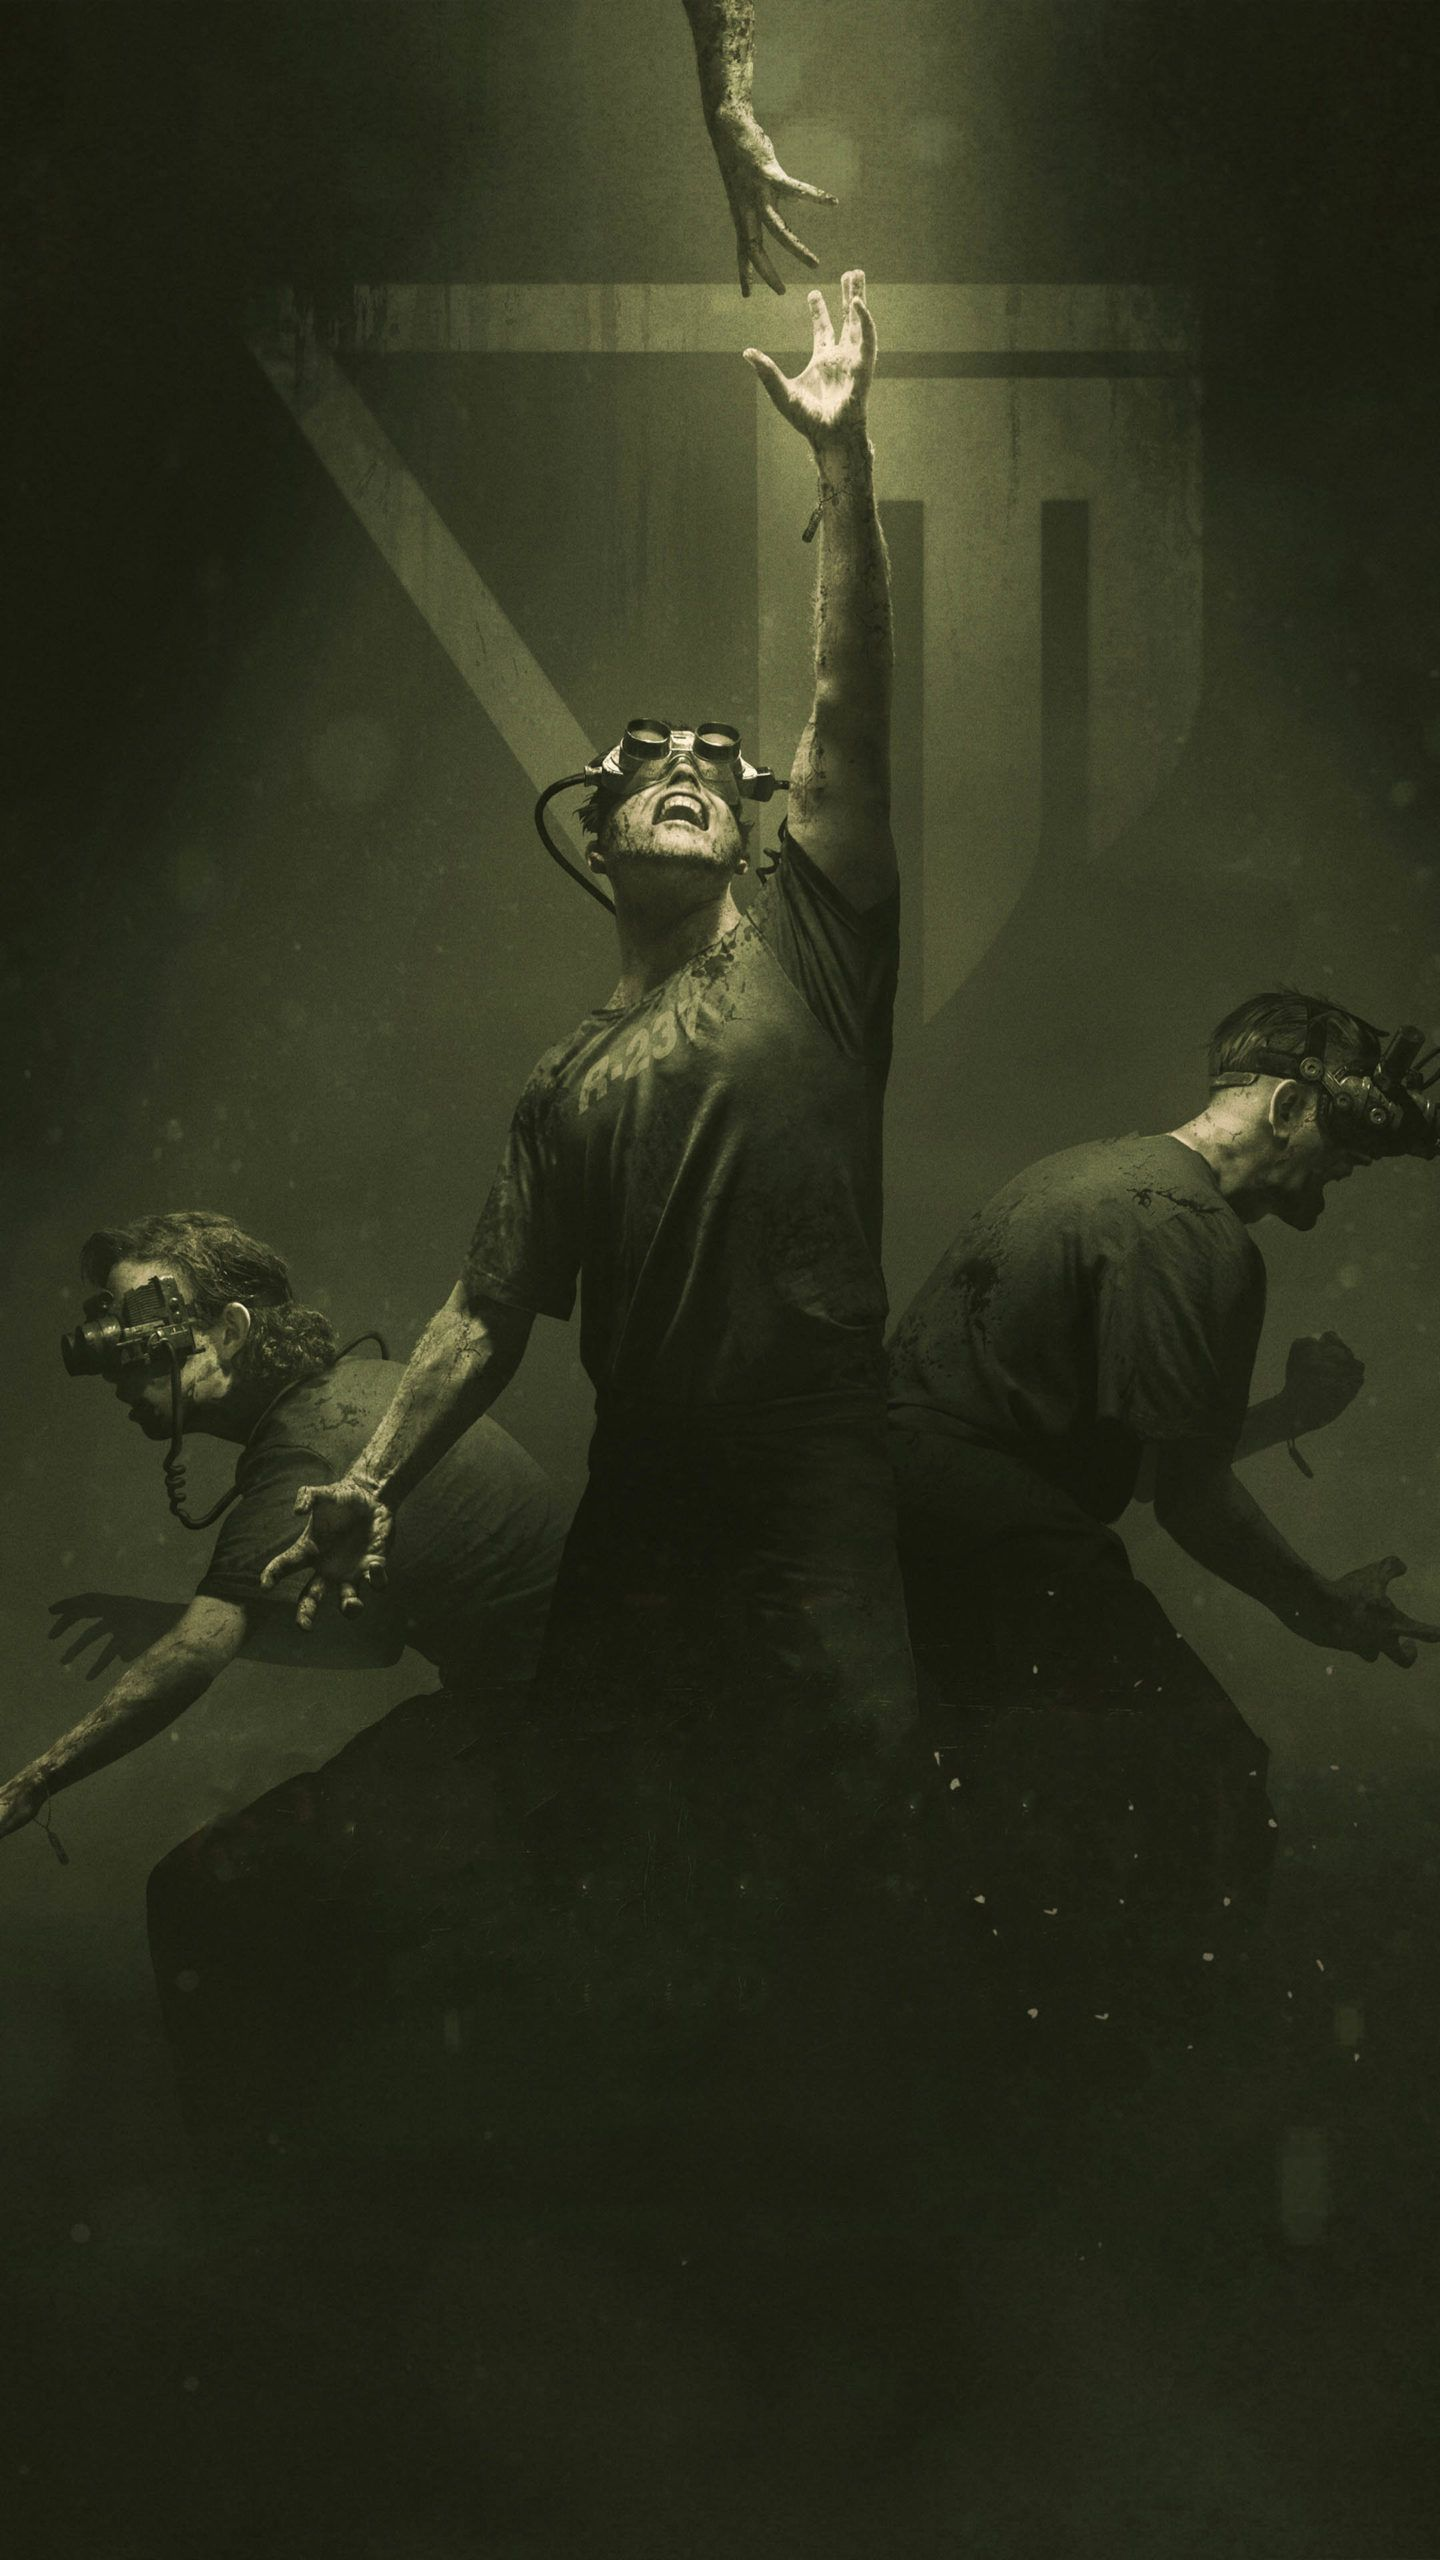 The Outlast Trials Poster 4k Ultra Hd Mobile Wallpaper Mobile Wallpaper Wallpaper Poster